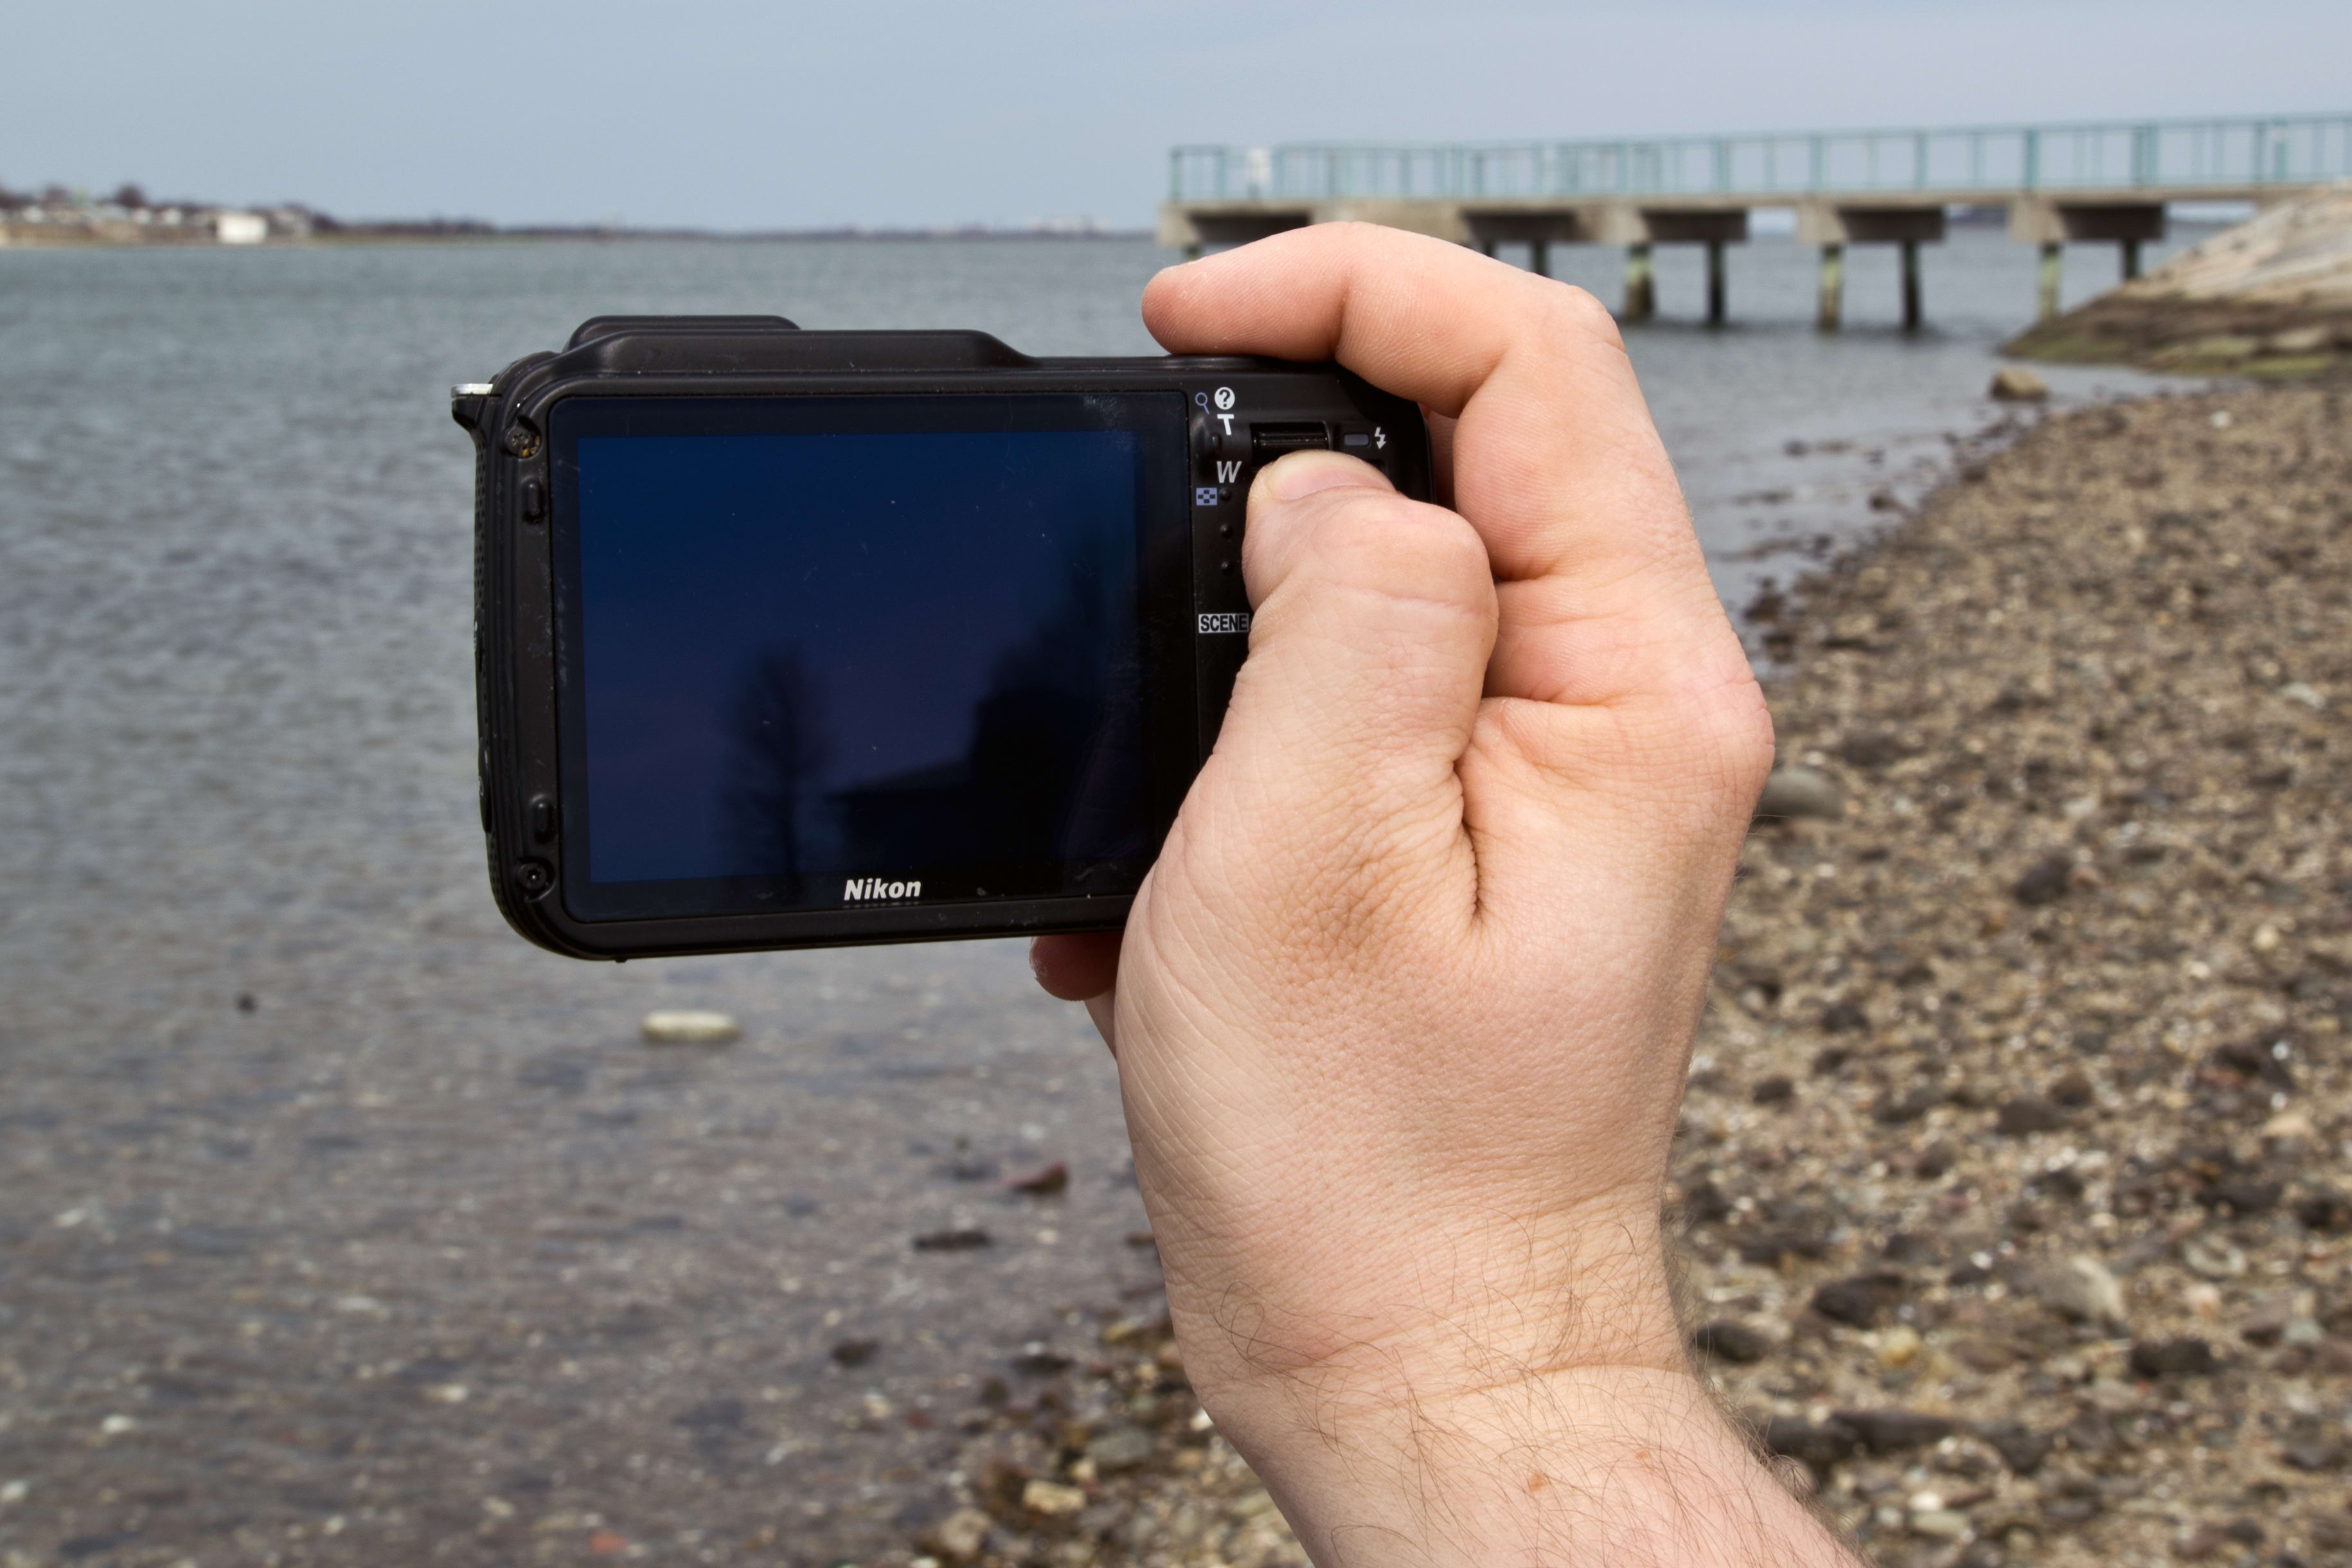 A shot of the Nikon Coolpix AW120's handling in the wild.